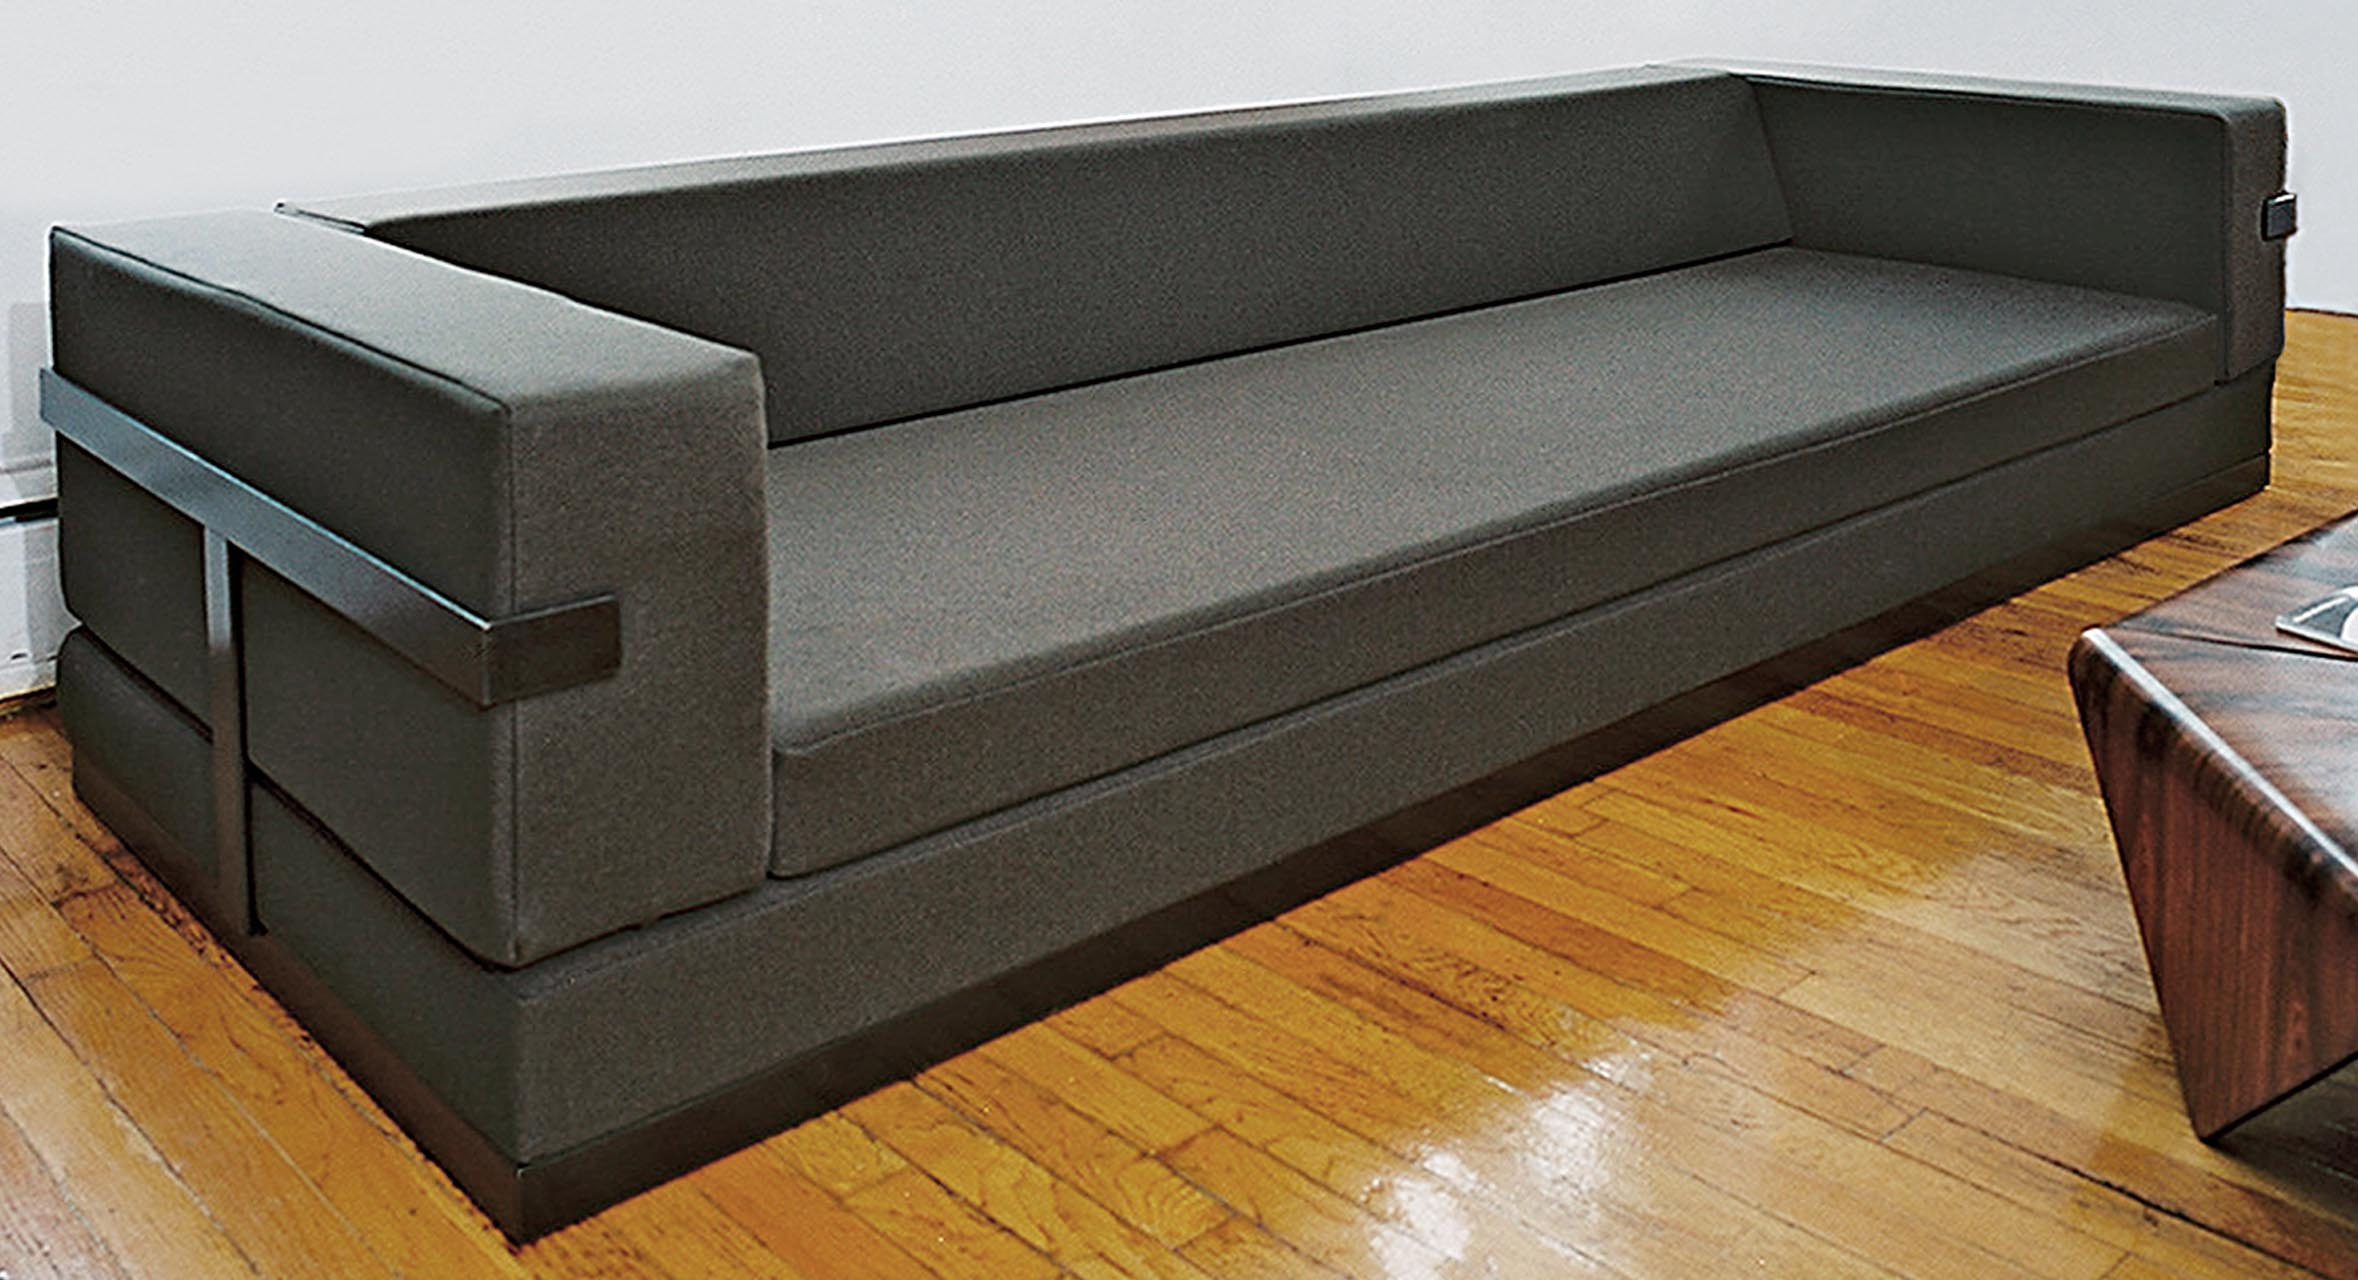 MD_Bruni_Sofa.jpg